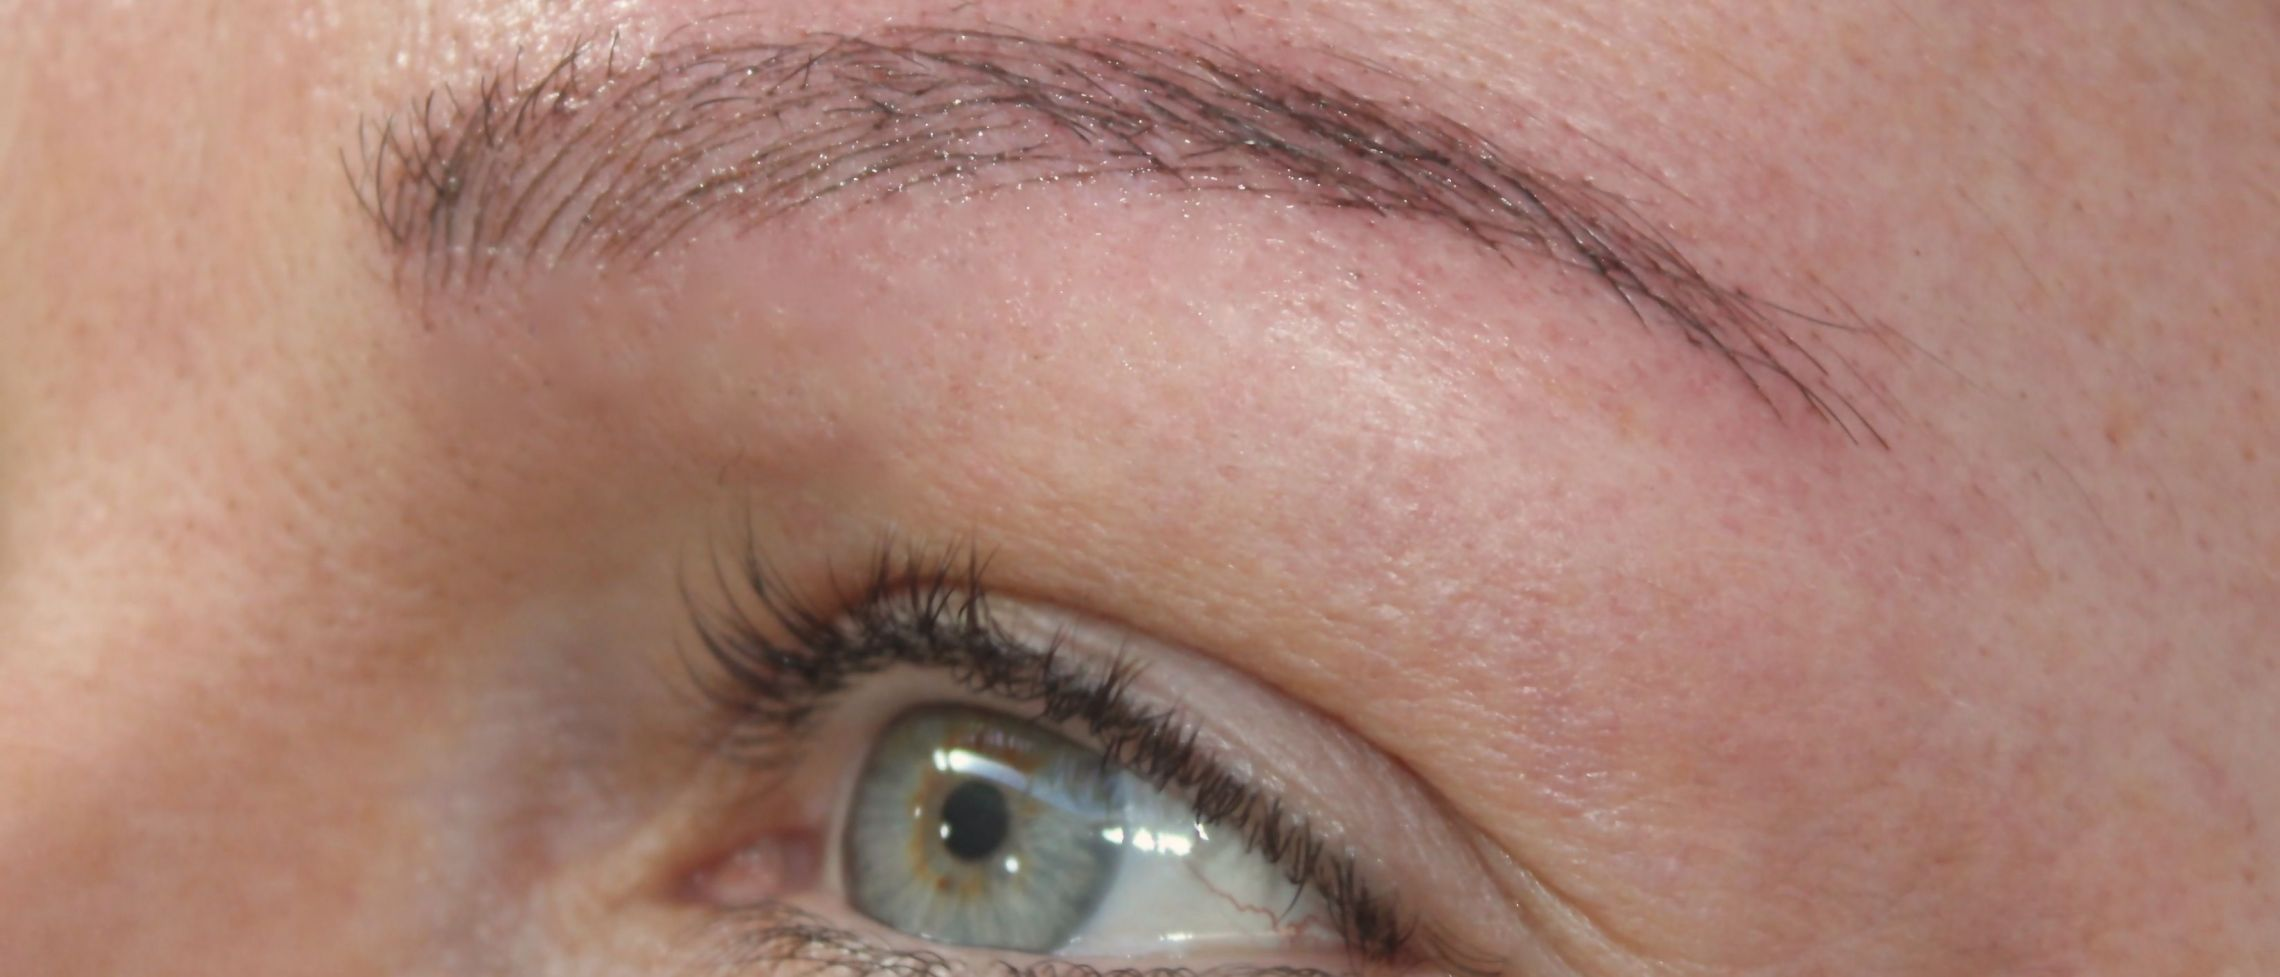 Are your eyebrows all plucked up? How to fake it with microblading SAFELY